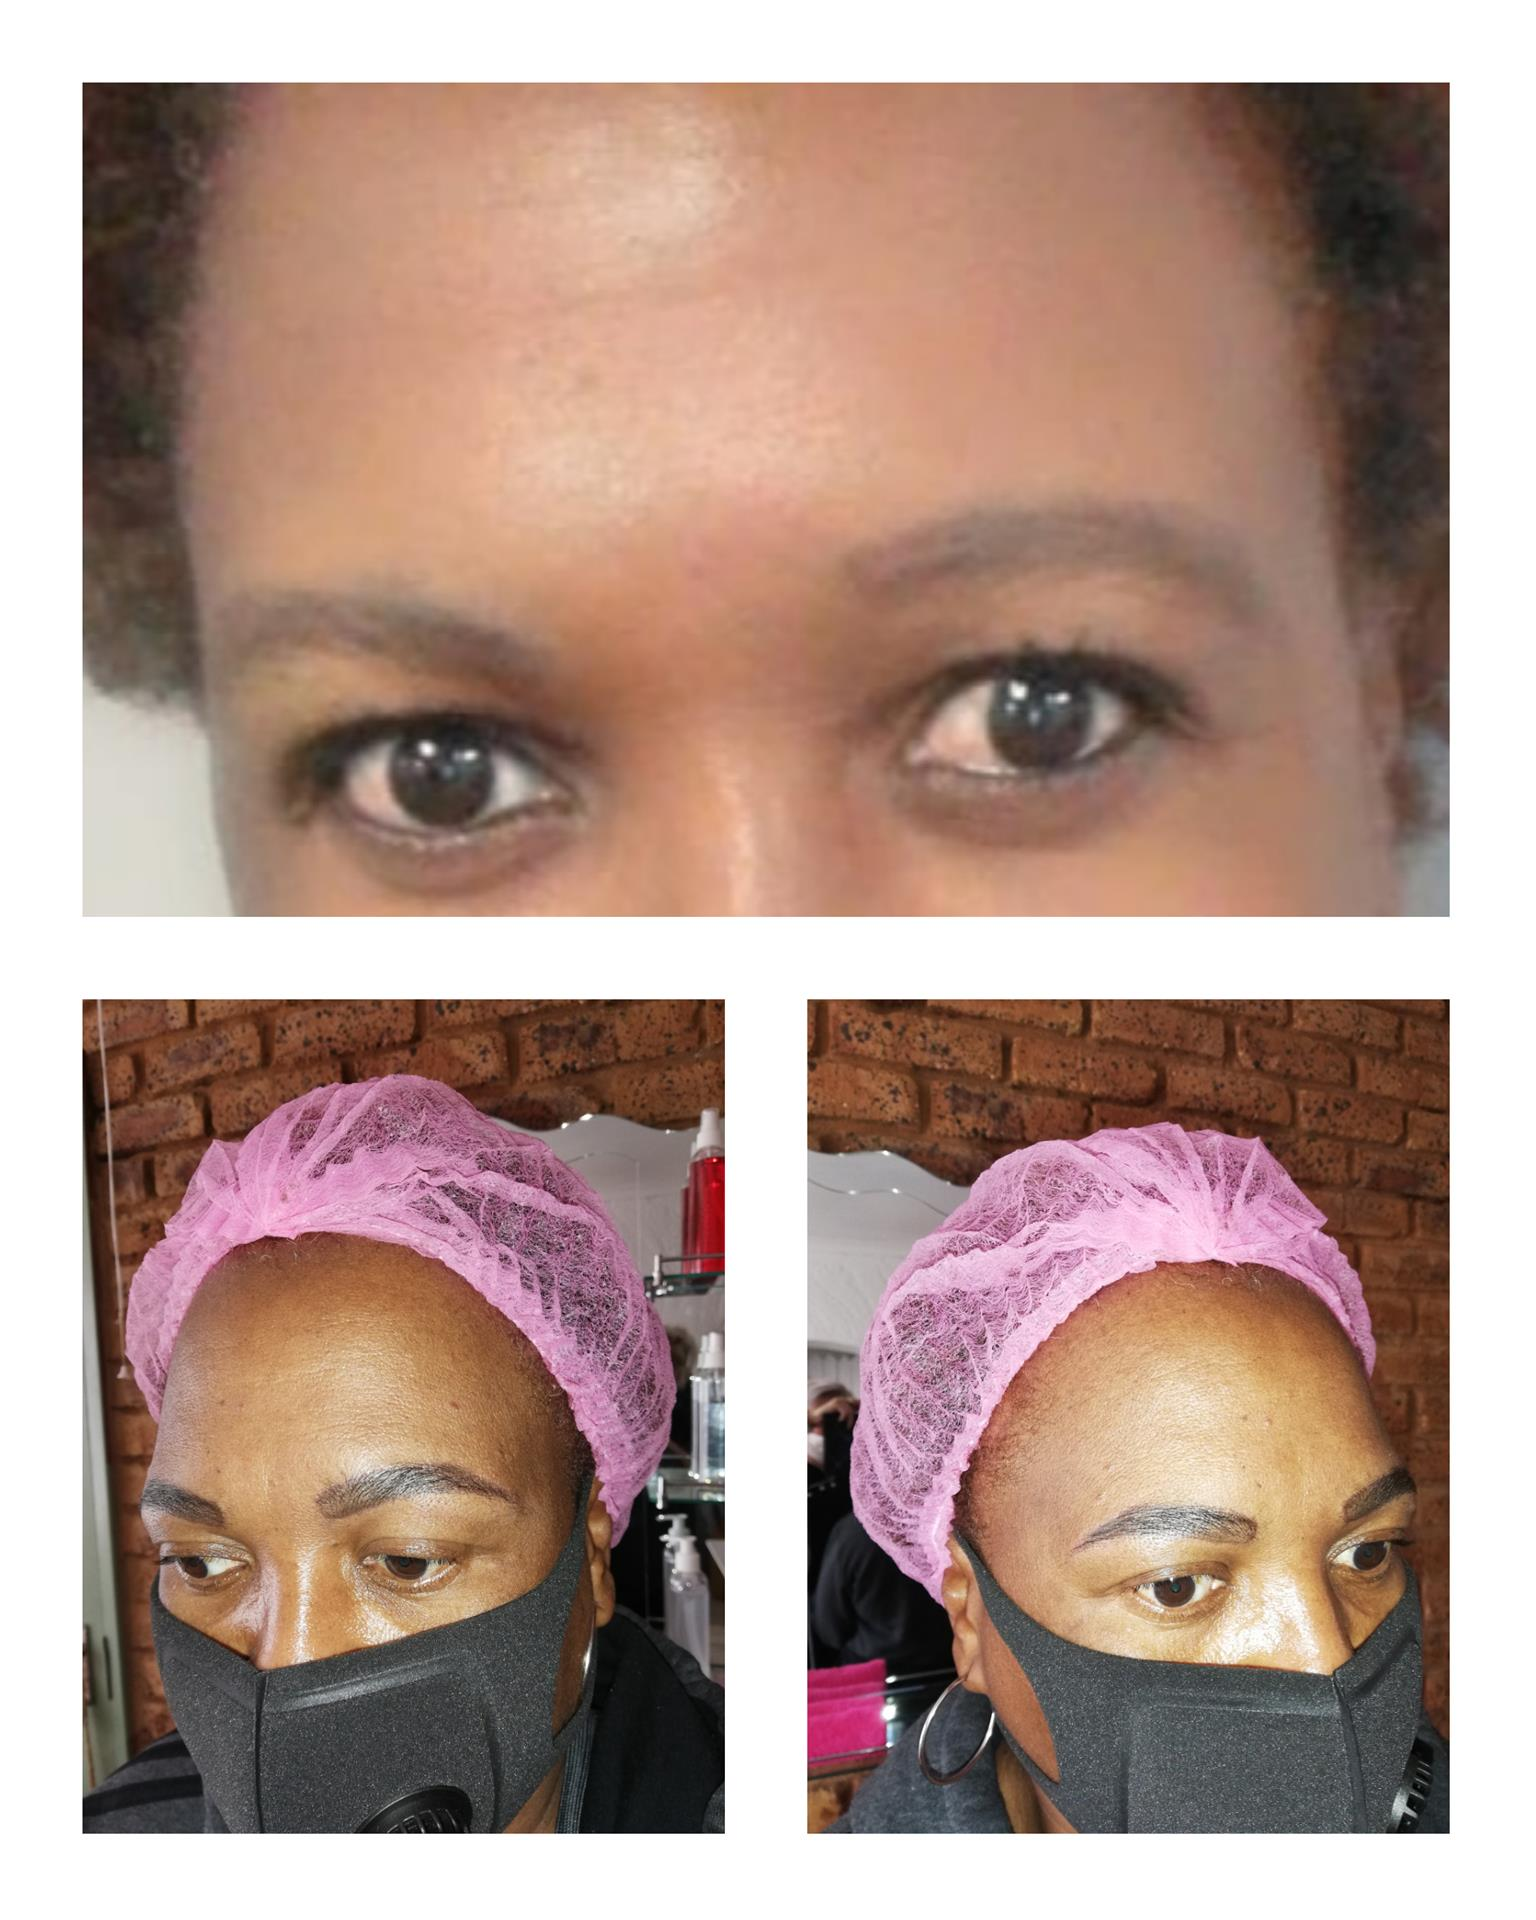 Microblading and Microshading. Eyeliners. Brow Lamination. Brow Tint. Tattoo removal